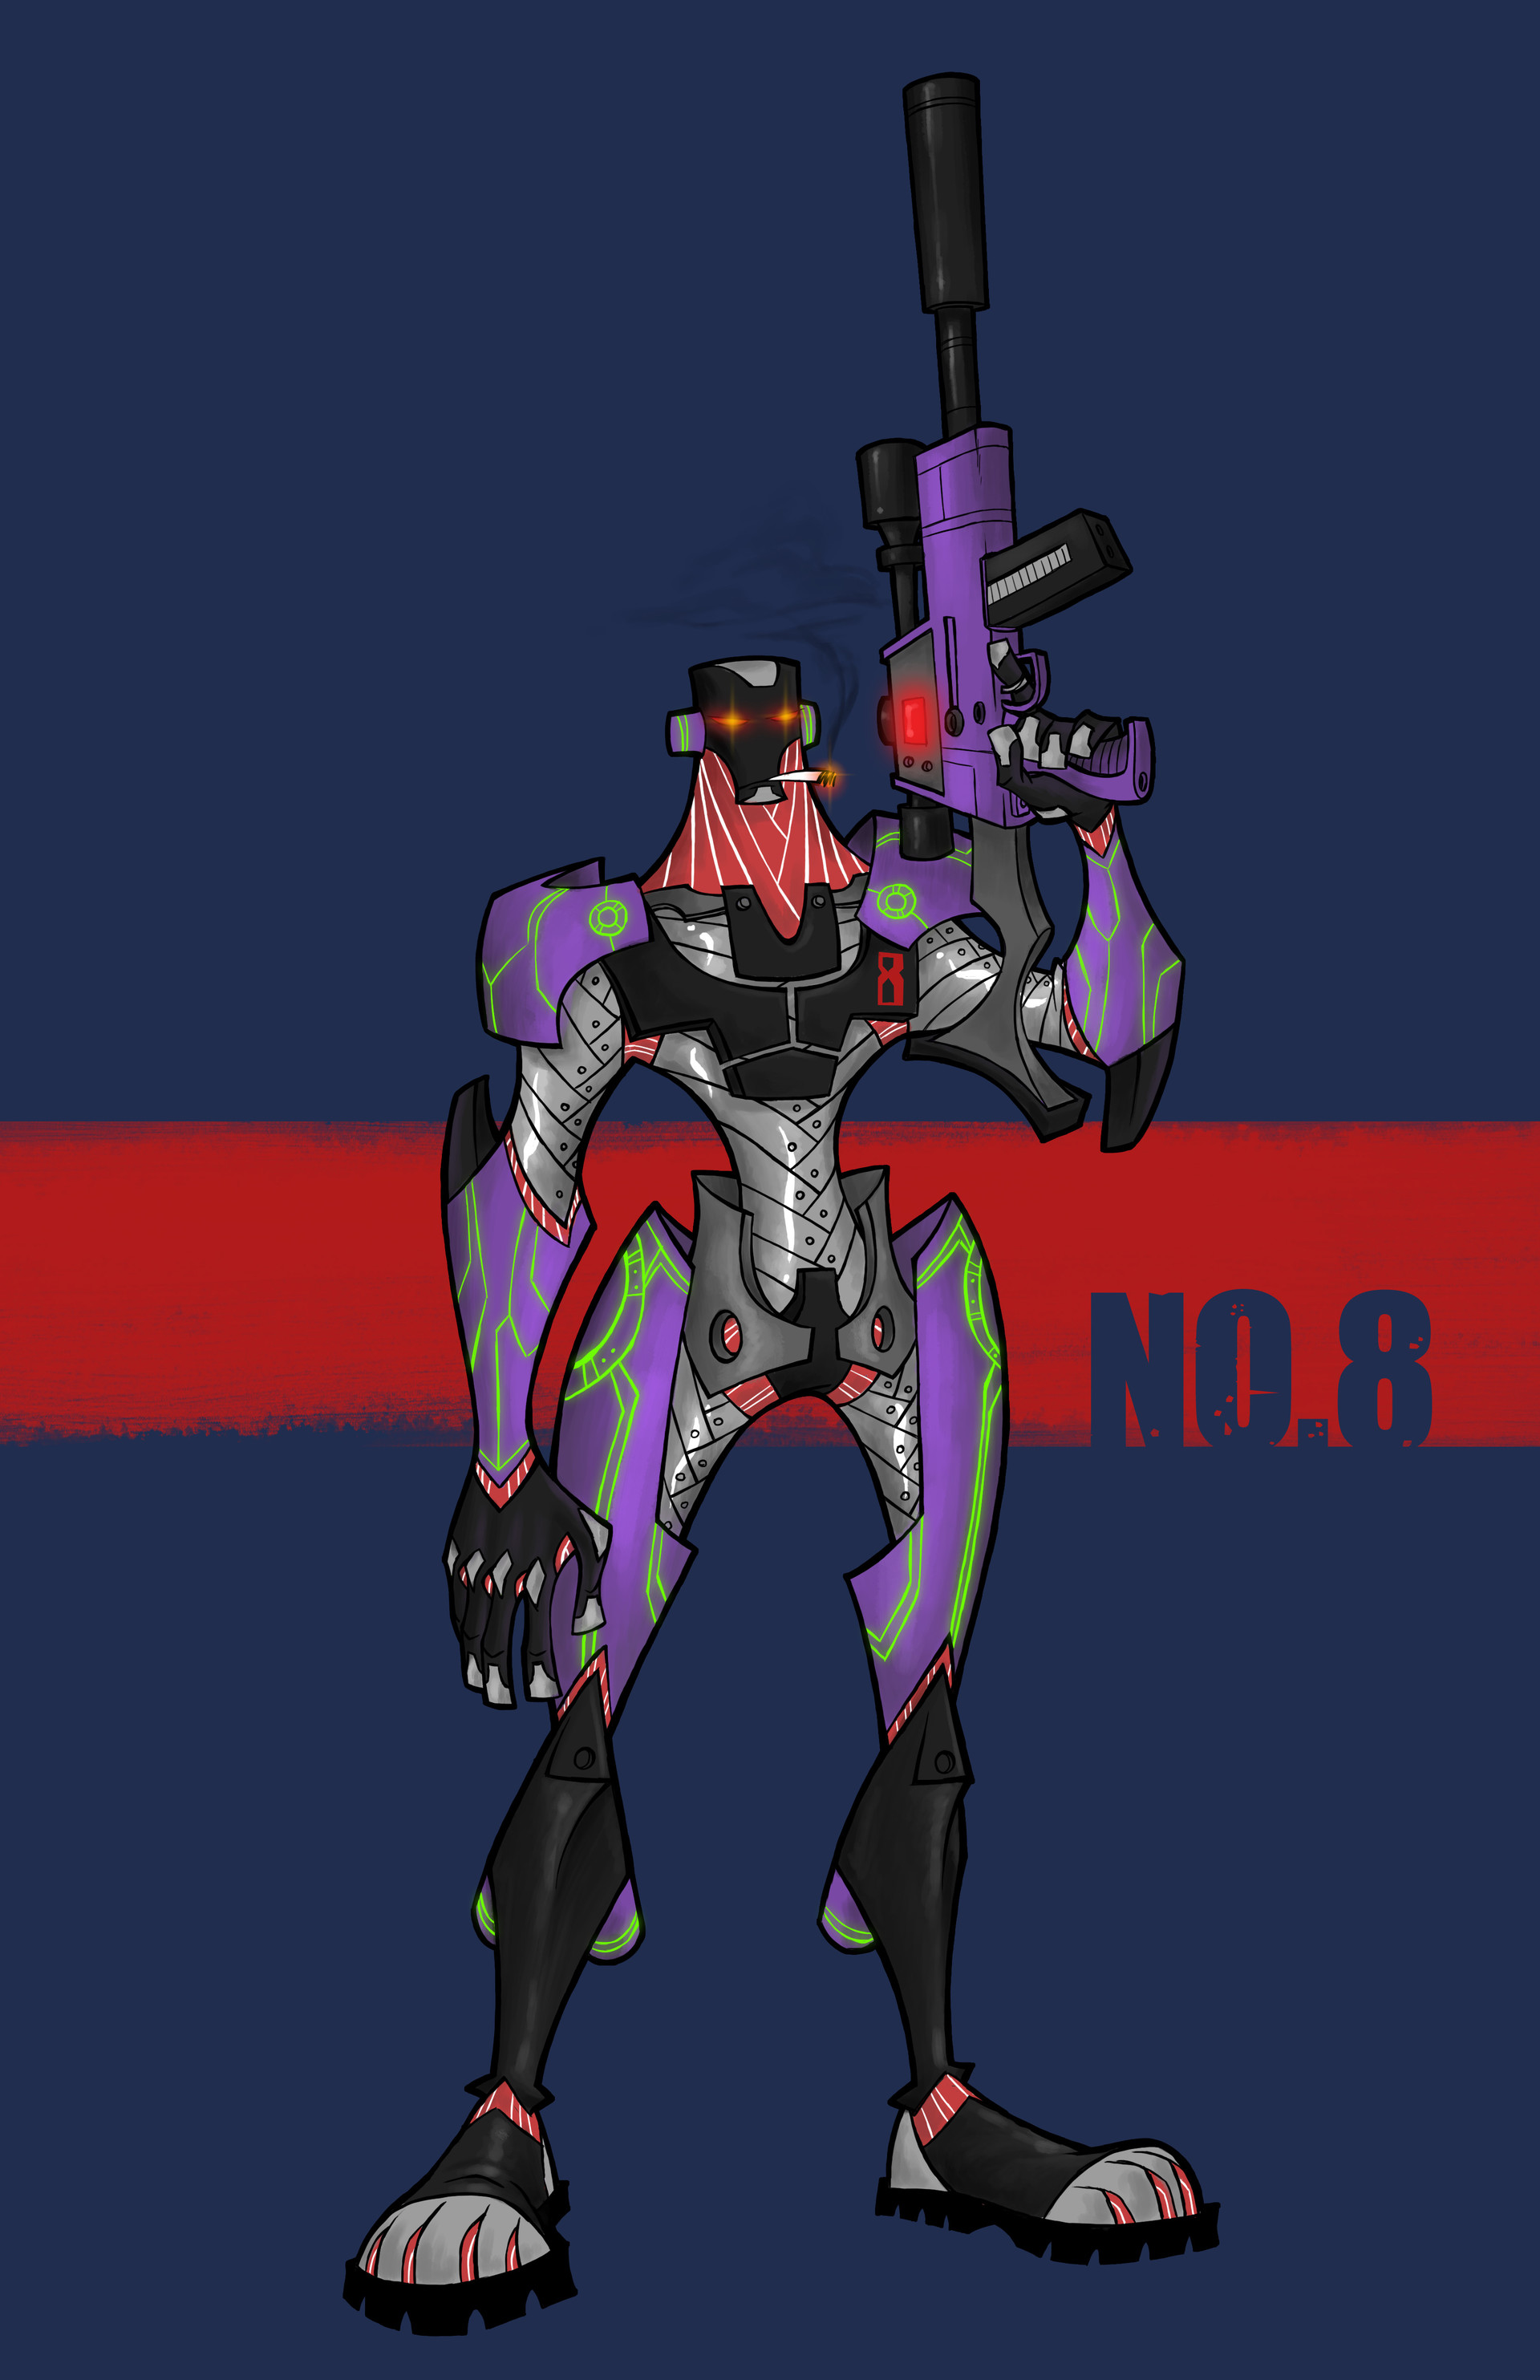 The hero, Assassin No. 8 is the 8th iteration in F.O.R.C.E's advanced cyber-soldier program and the most advanced artificial being in existence. He, along with his comrades, fights to protect the world of the future.